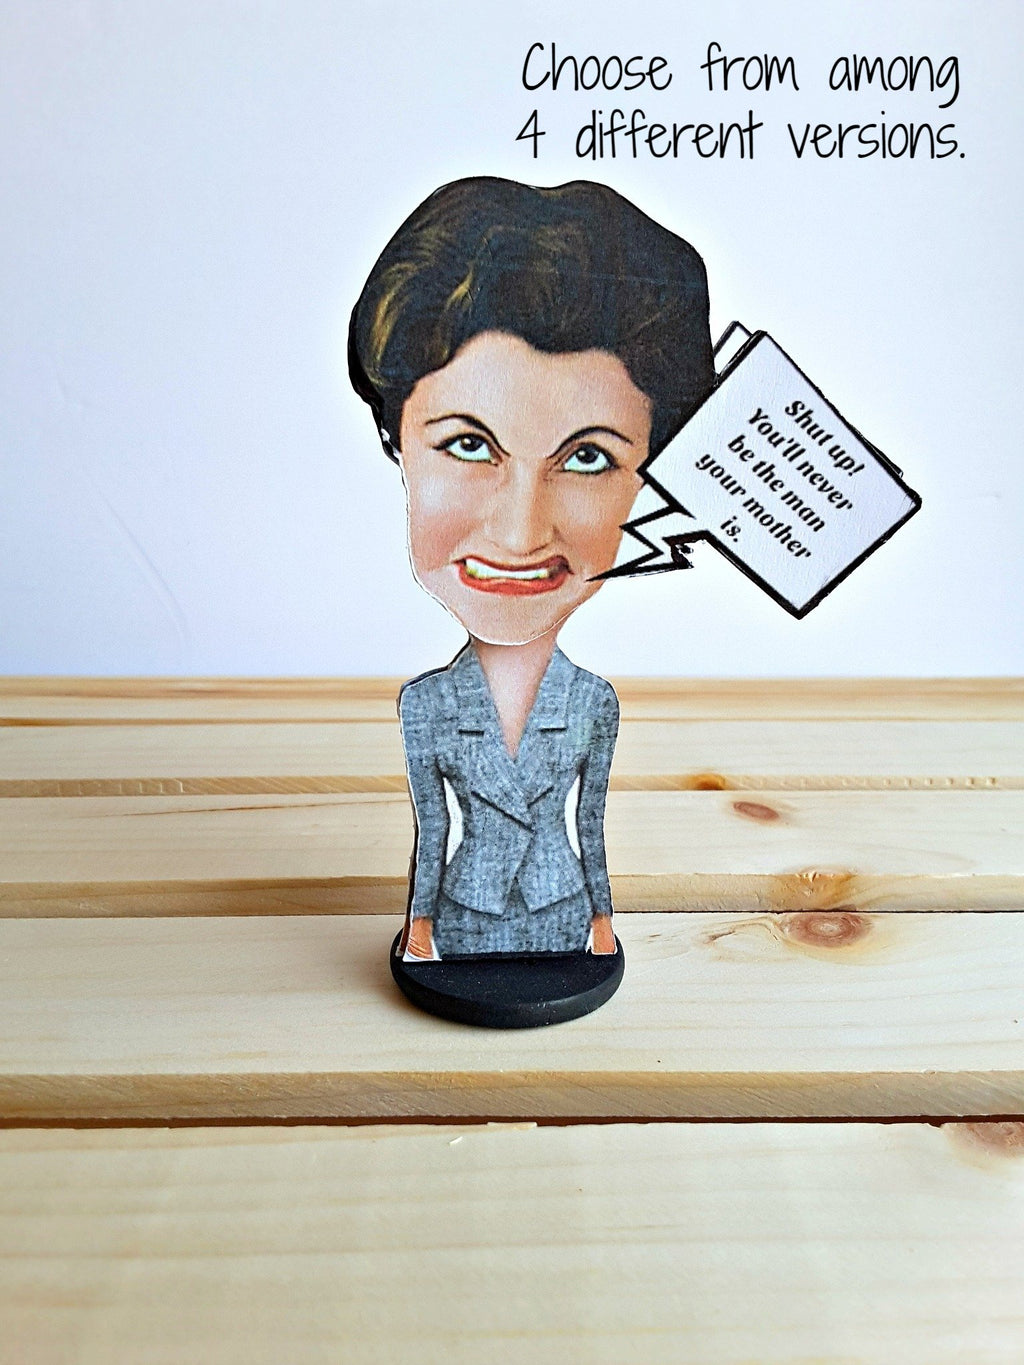 3-D crazy lady with wobble head and custom message